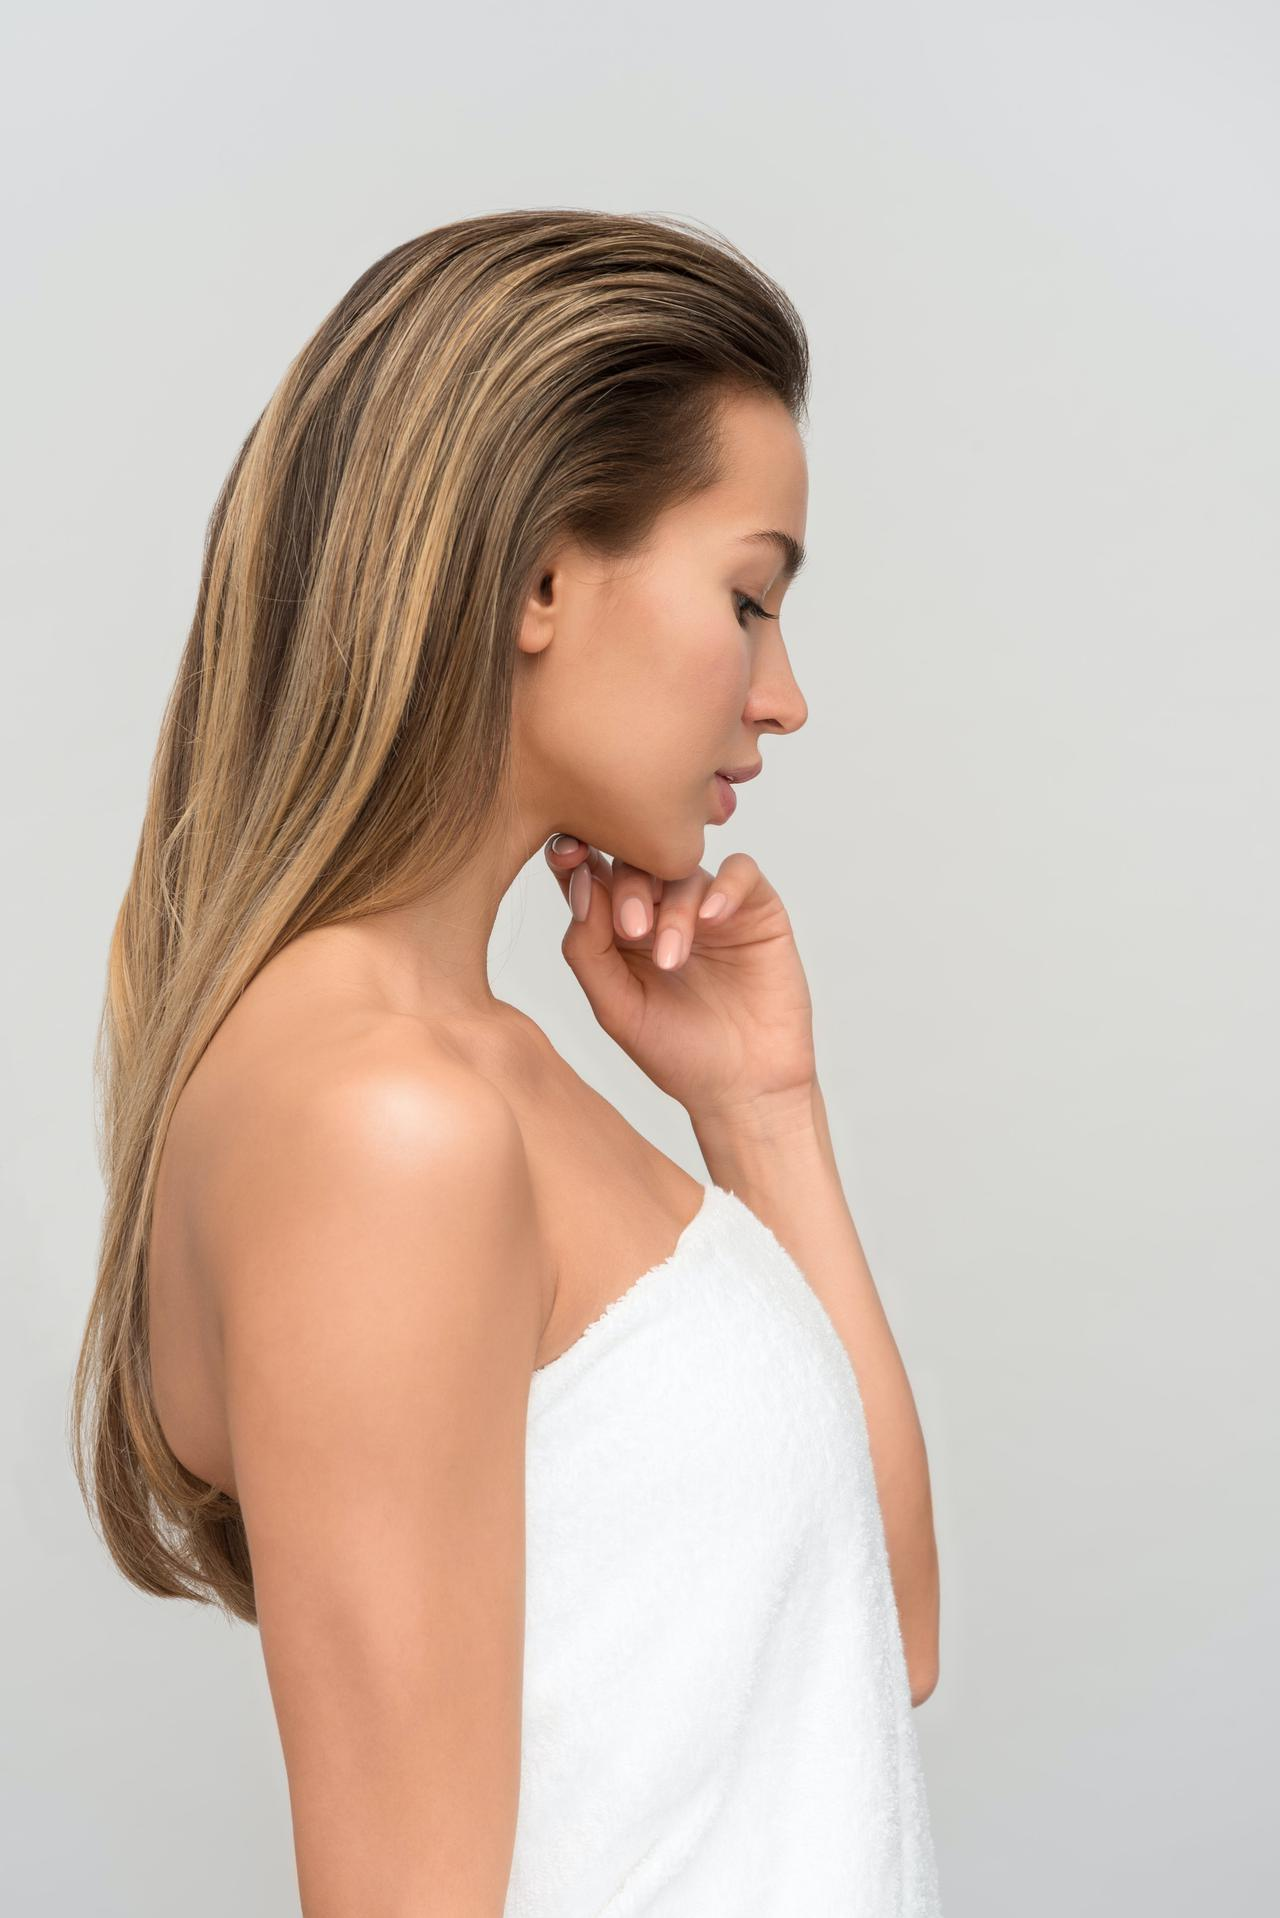 This is a picture of a woman wondering what questions to ask before starting your body shaping treatment.